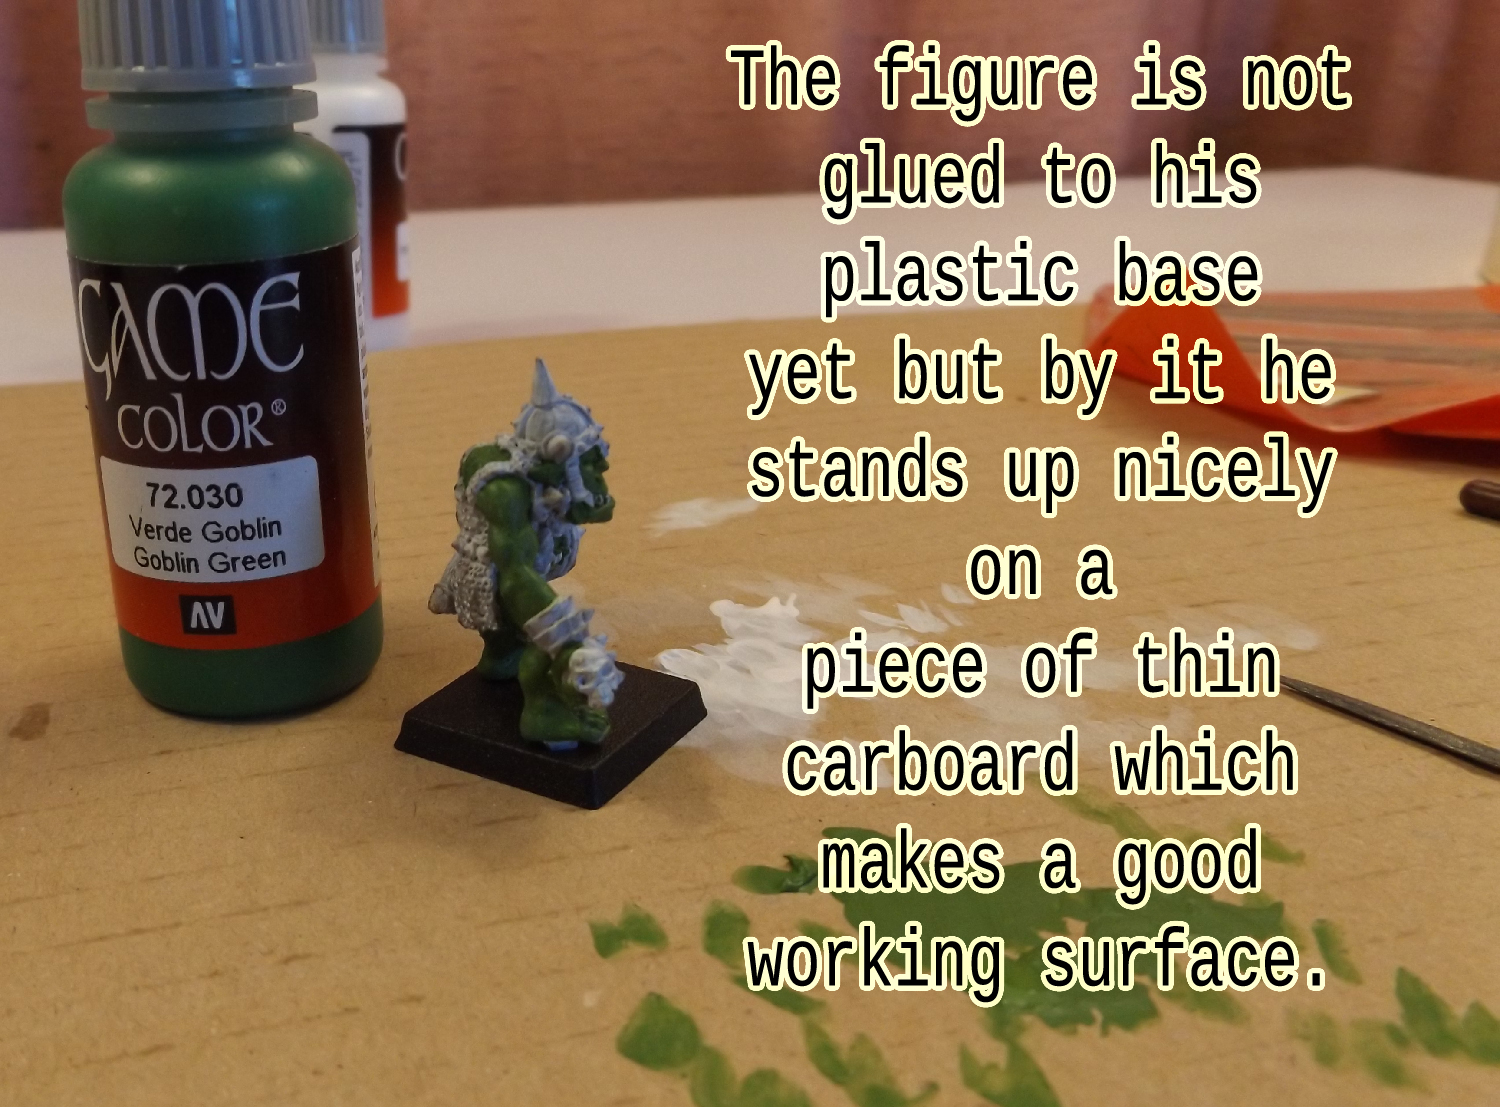 Don't glue your figure to its base yet. But use the base to stand him up if you can.